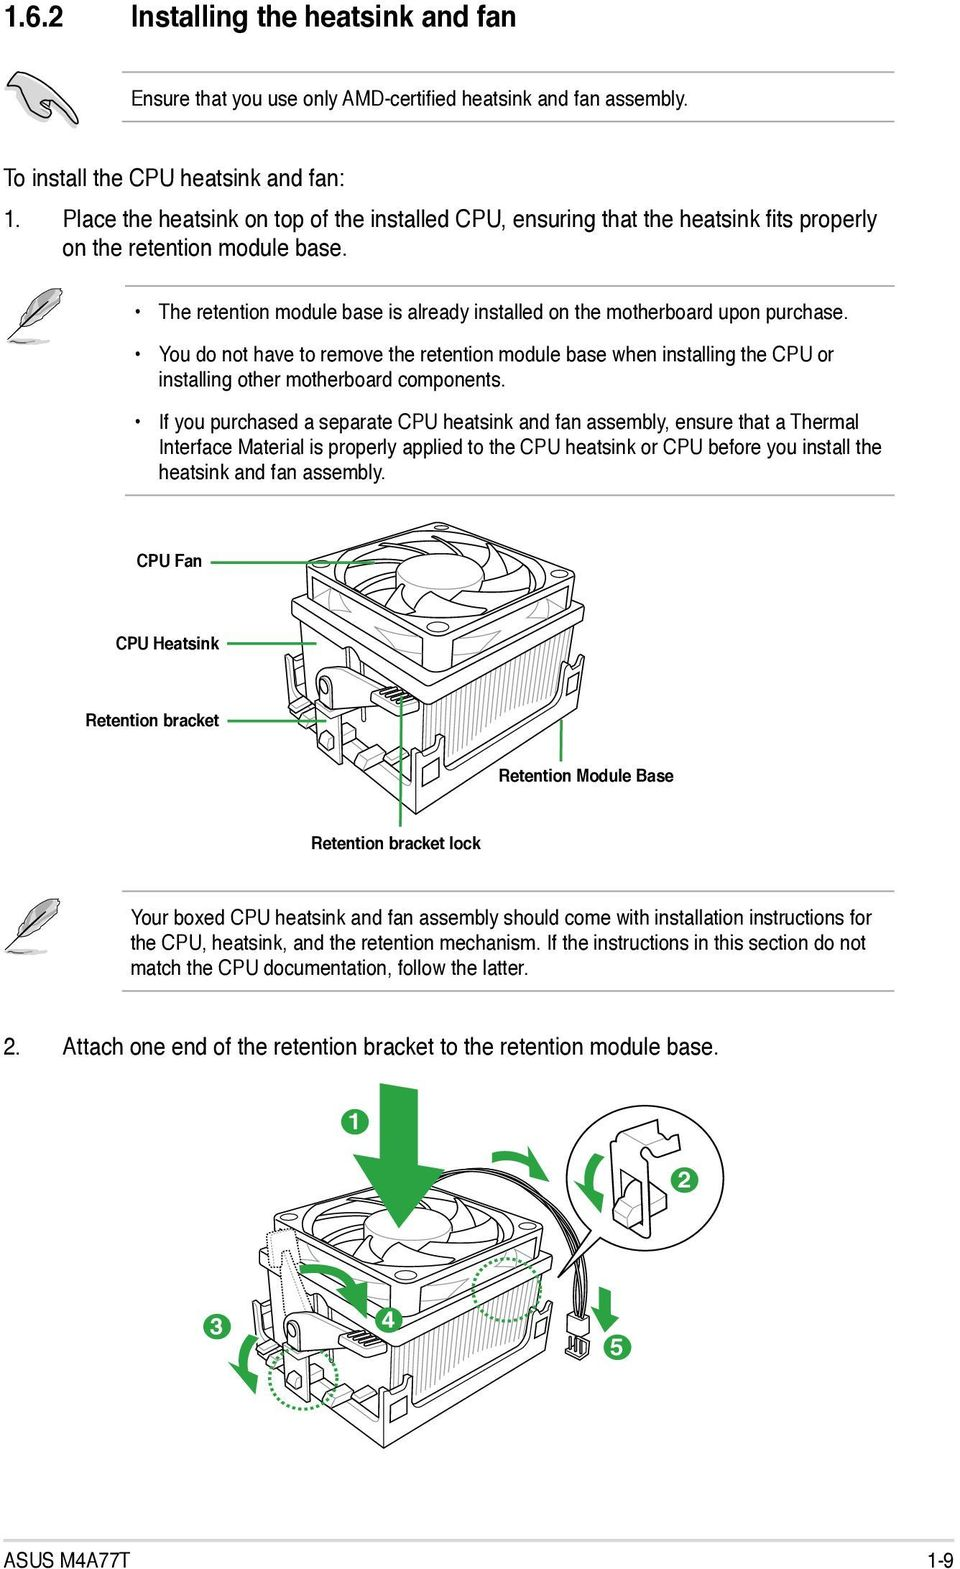 E5248 First Edition V1 December Pdf Compaq Hp Oem P4sd Front Panel Wiring Diagram You Do Not Have To Remove The Retention Module Base When Installing Cpu Or